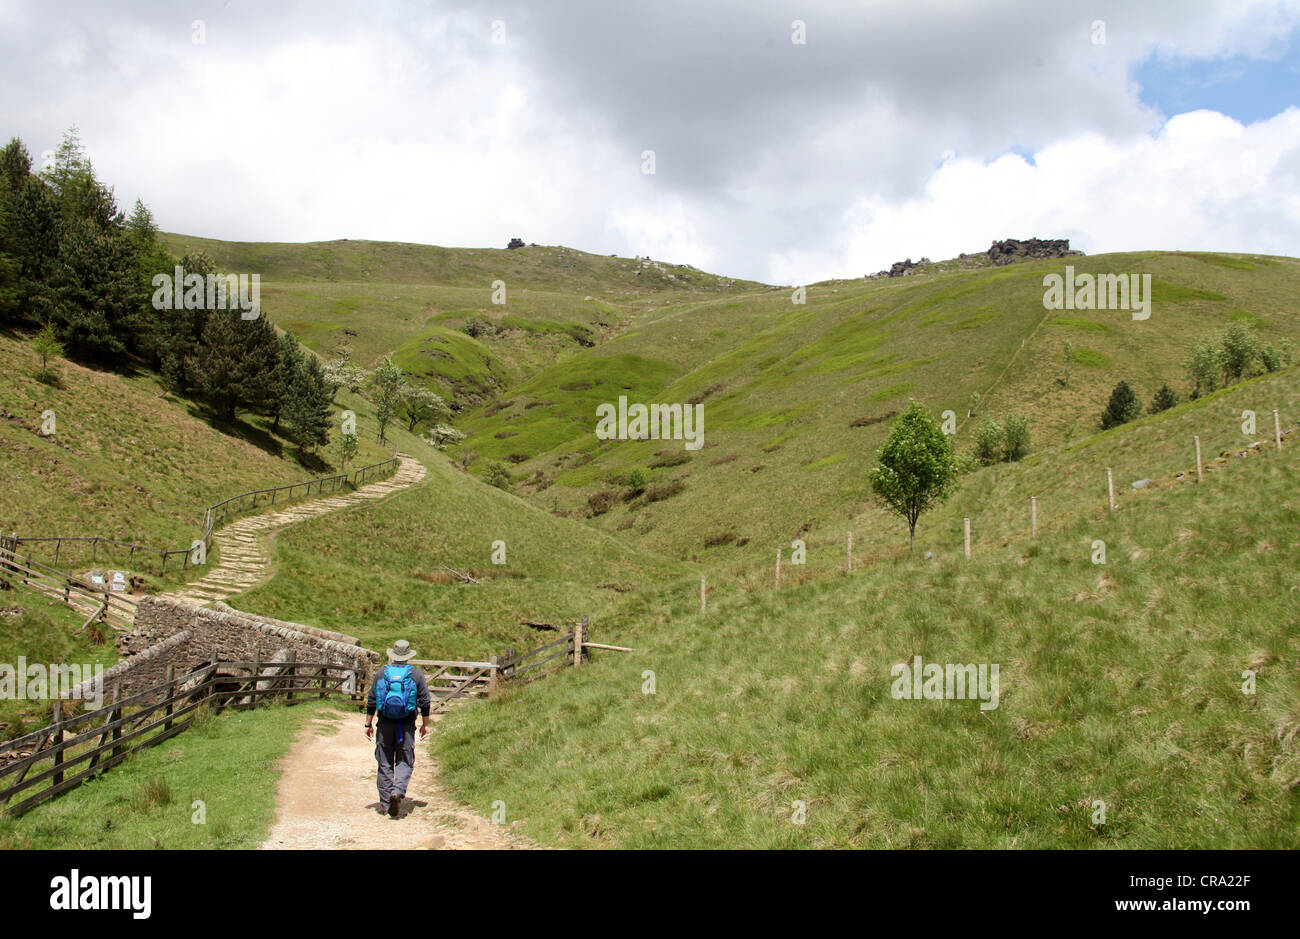 Hiking in the Peak District National Park to Kinder Scout - Stock Image